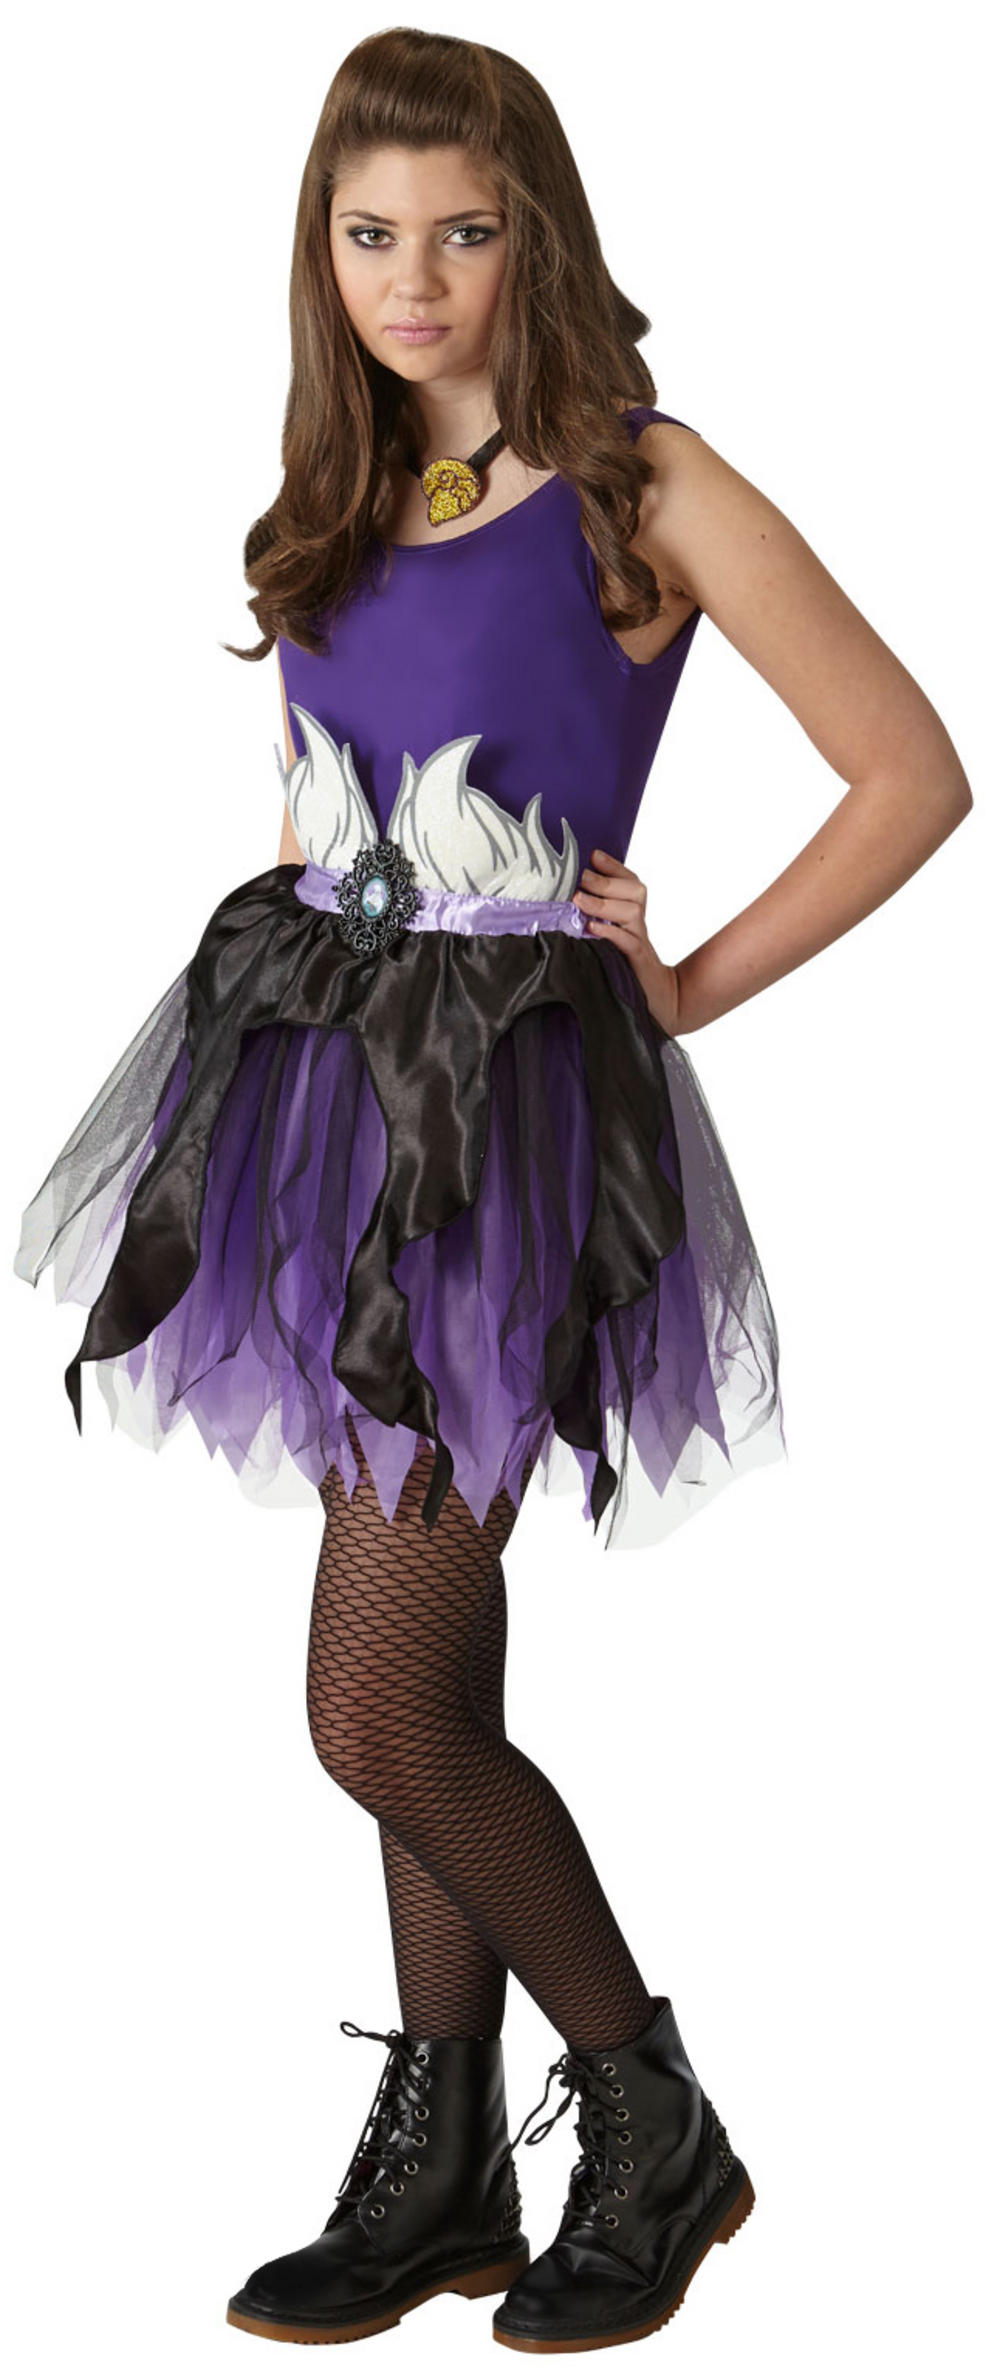 Ursula Tutu Tween Accessory Set